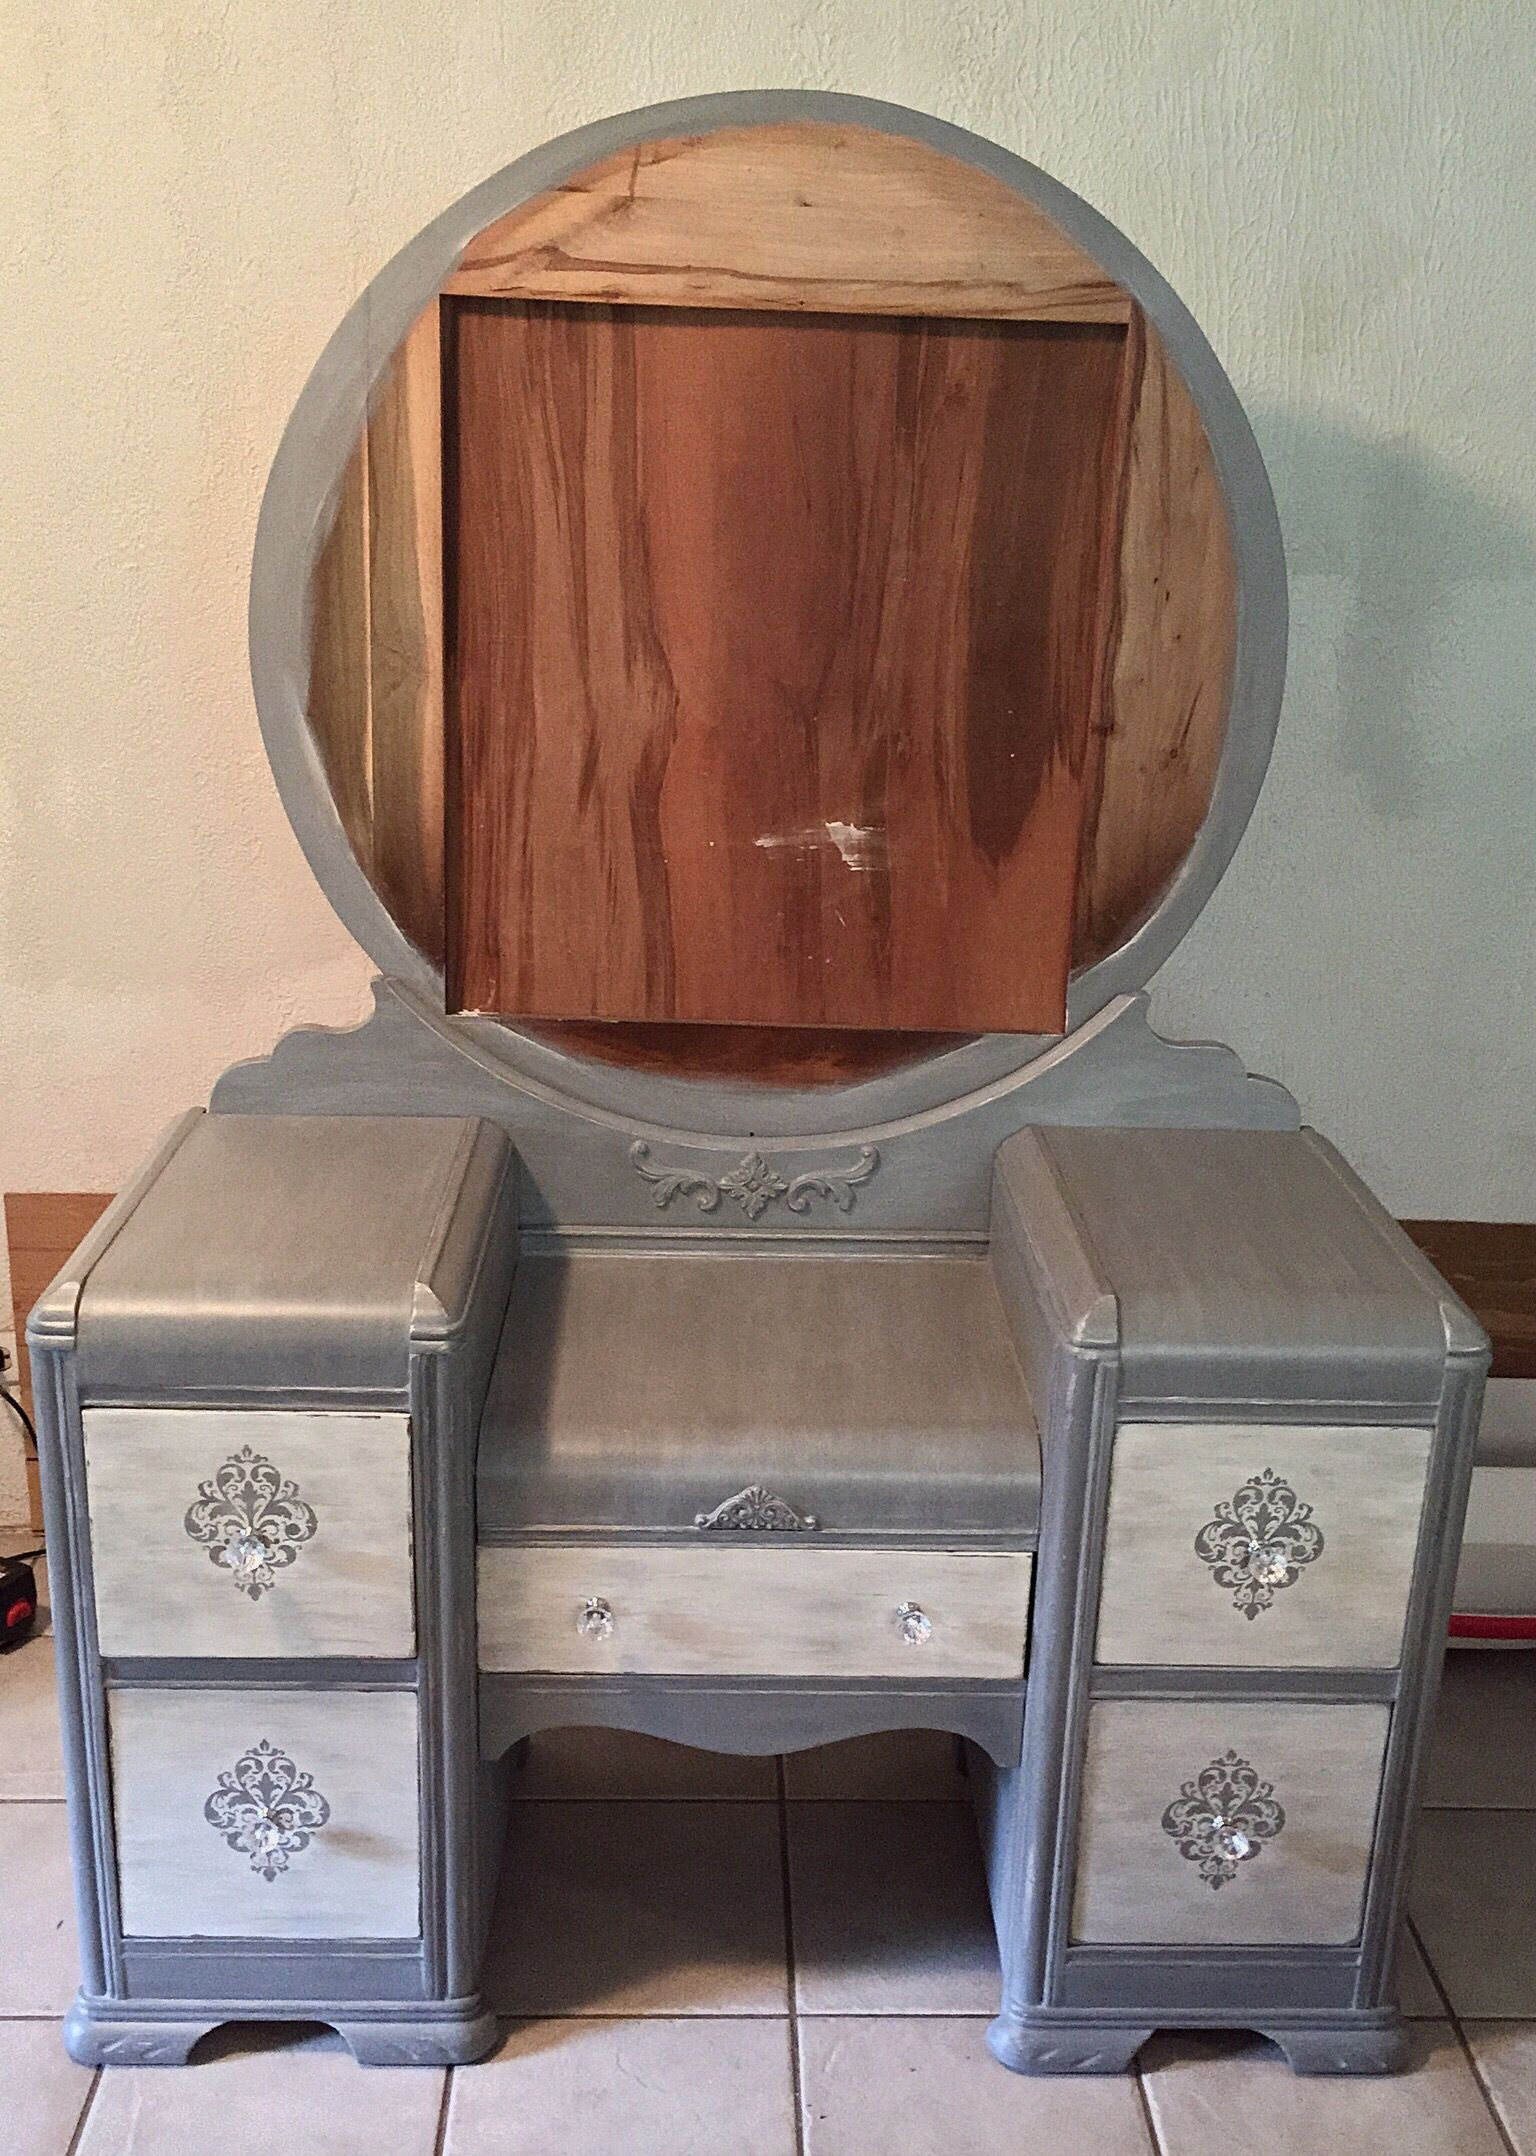 Vintage Waterfall Vanity - Vintage Waterfall Vanity Chalk Painted Furniture Pinterest